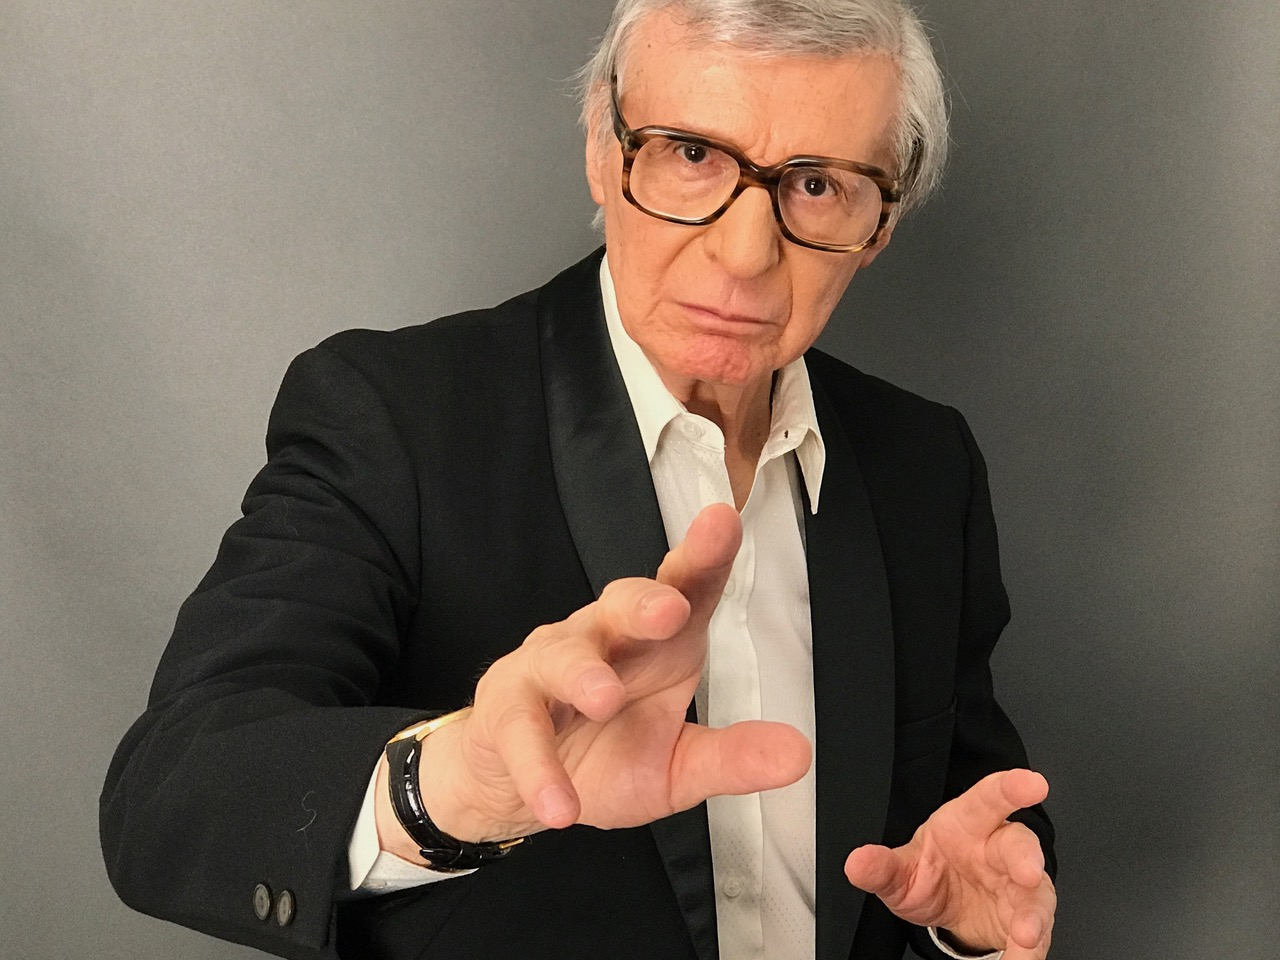 THE AMAZING KRESKIN - July 2-4, 2021 Show